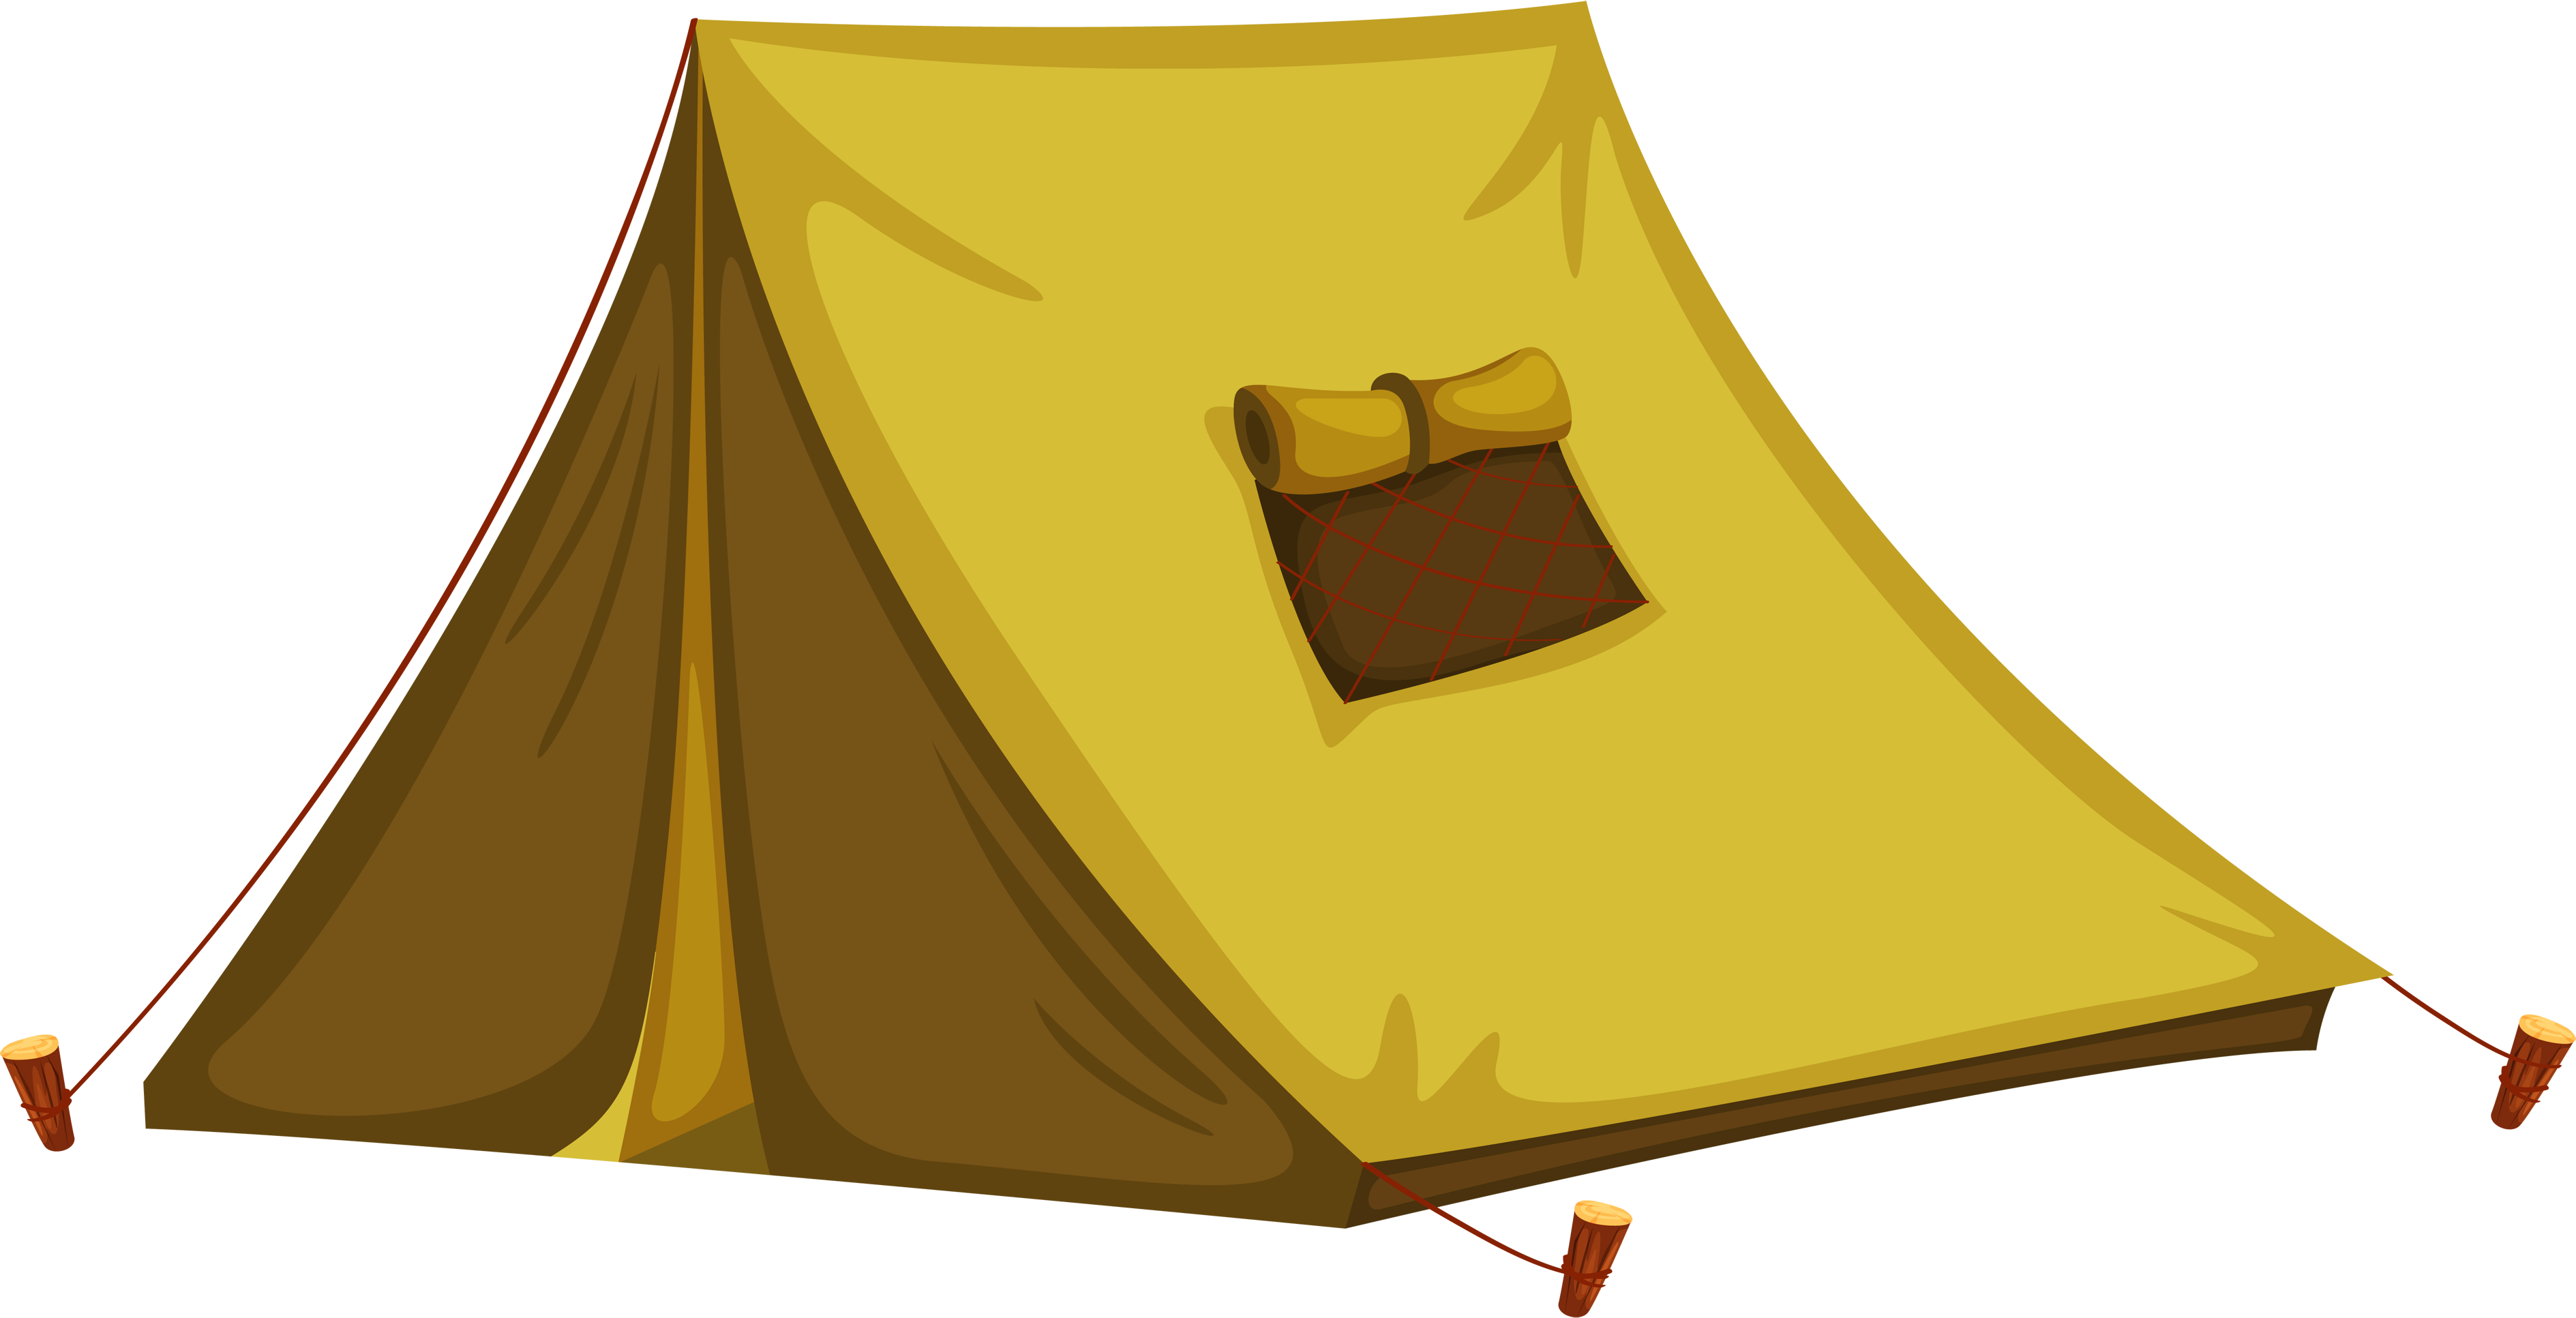 Tent transparent vector. Yellow png image purepng